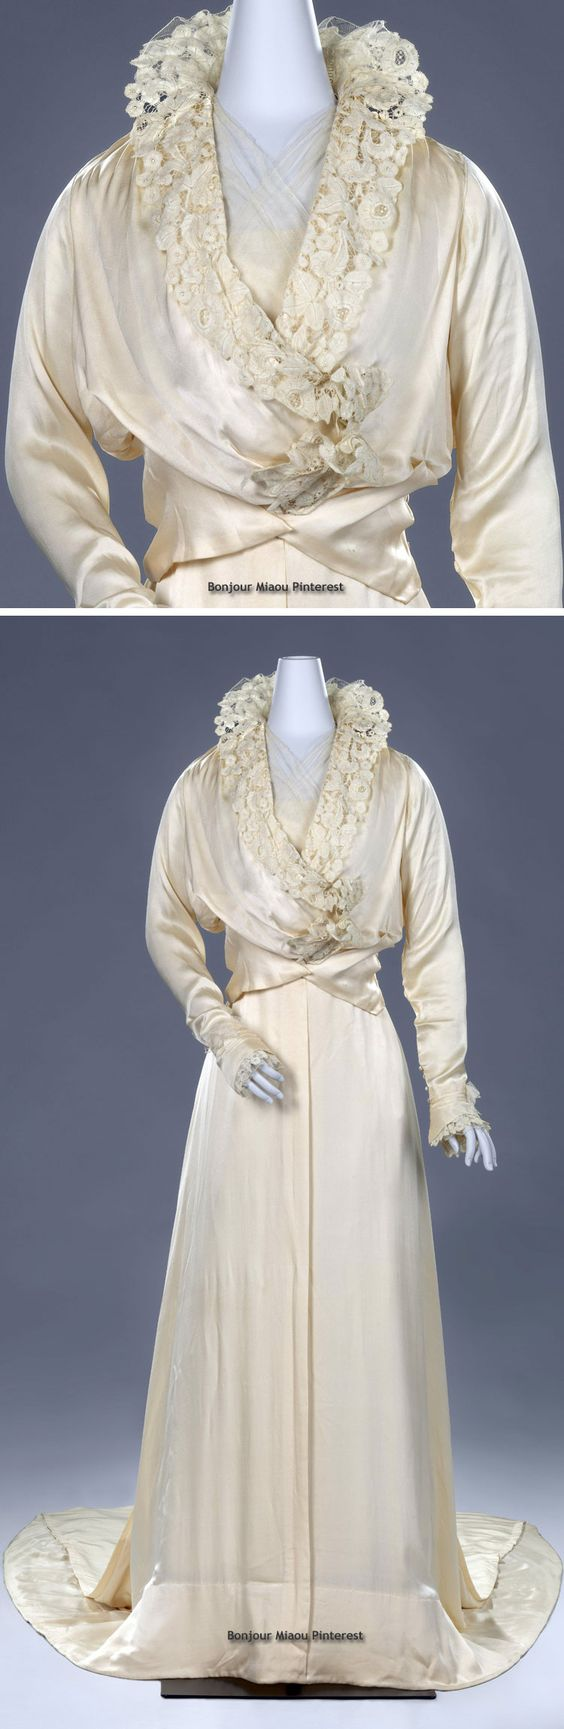 Wedding dress with standing collar, Hirsch, 1915. Silk crepe de chine bolero-type bodice trimmed with bobbin lace with v-neck and gauzy cotton tulle modesty. Closes in front with metal snaps and lined with silk pongé, which closes with hooks & eyes. Flaired, weighted skirt with train. Rijksmuseum